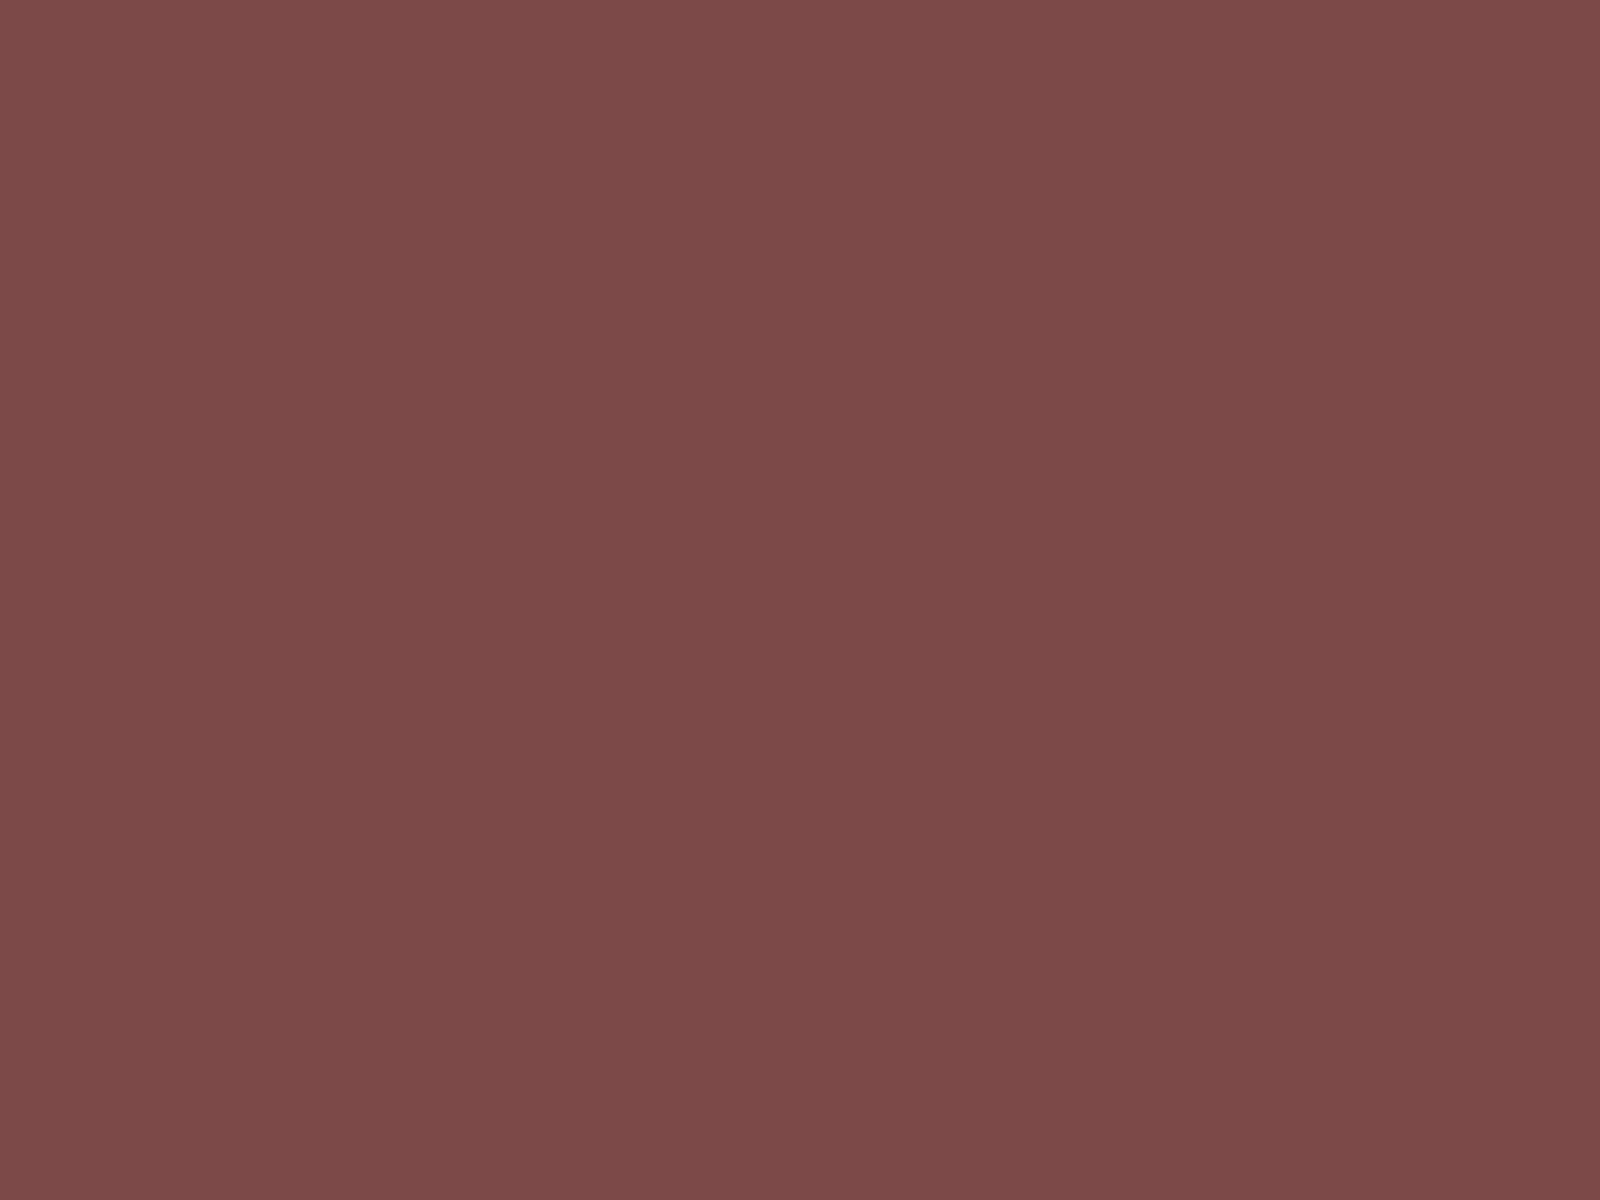 1600x1200 Tuscan Red Solid Color Background